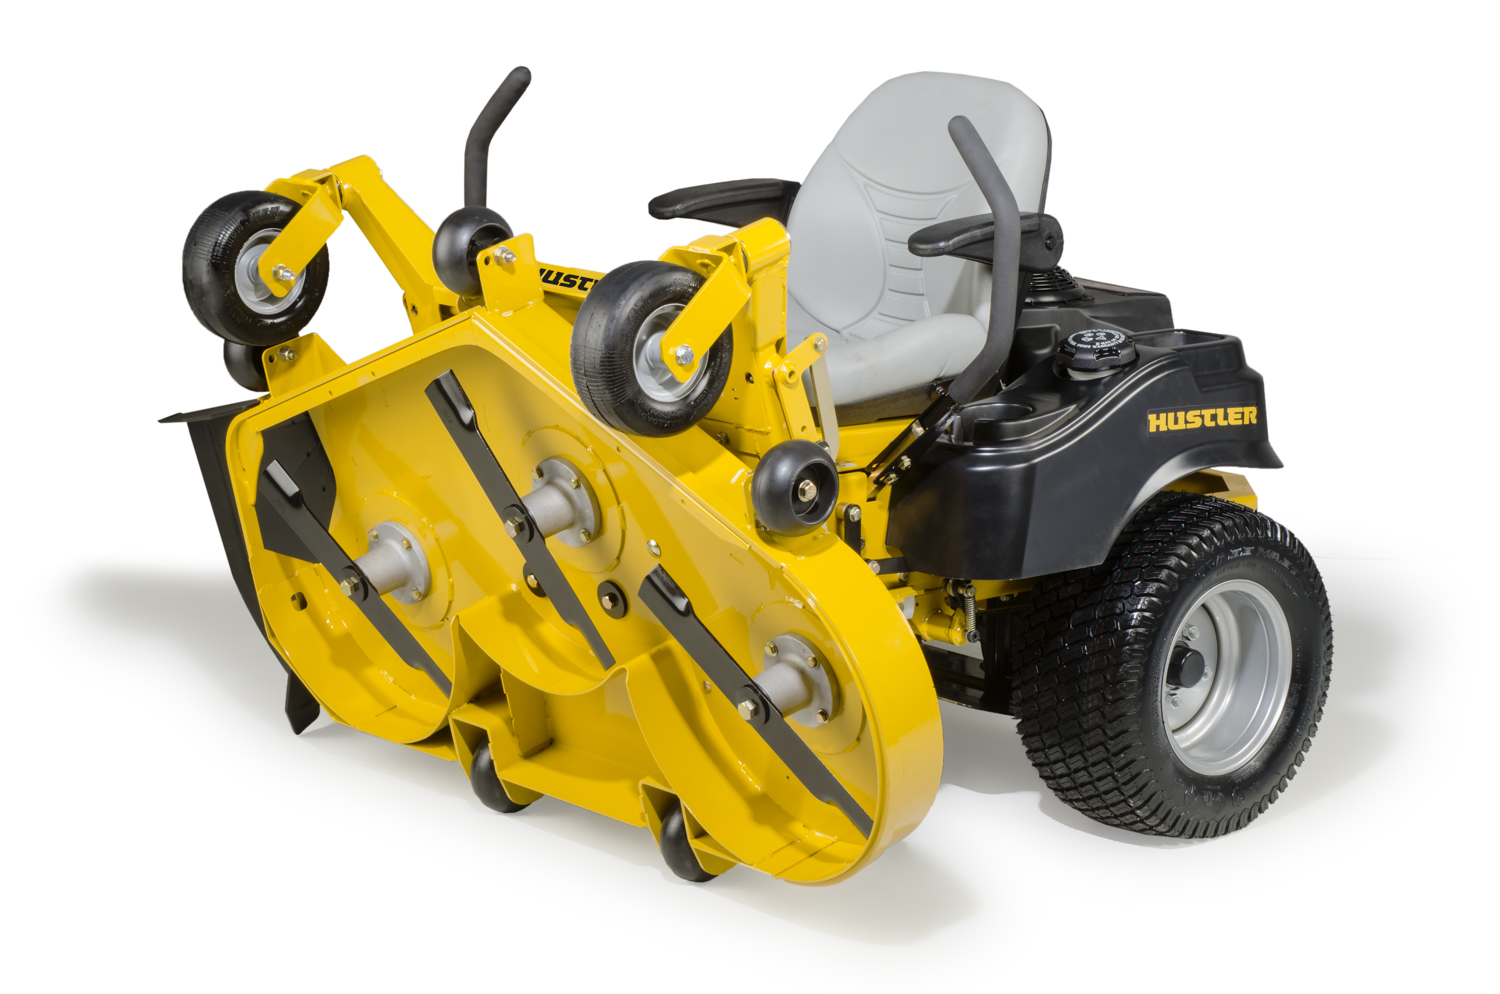 Flip up deck mower